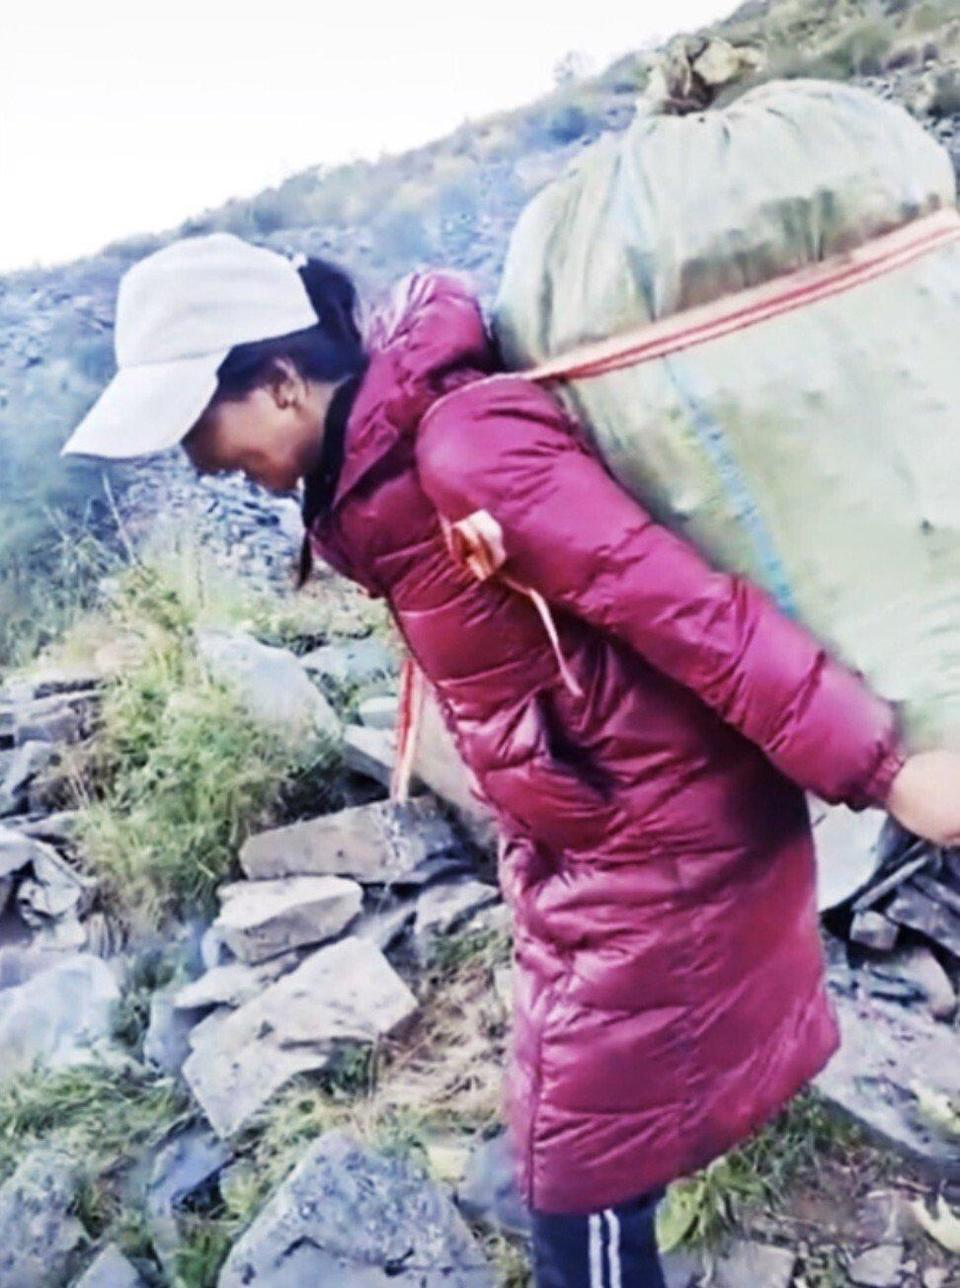 Lhamo had tried to seek help from the authorities before she was murdered by her ex-husband. Photo: Douyin